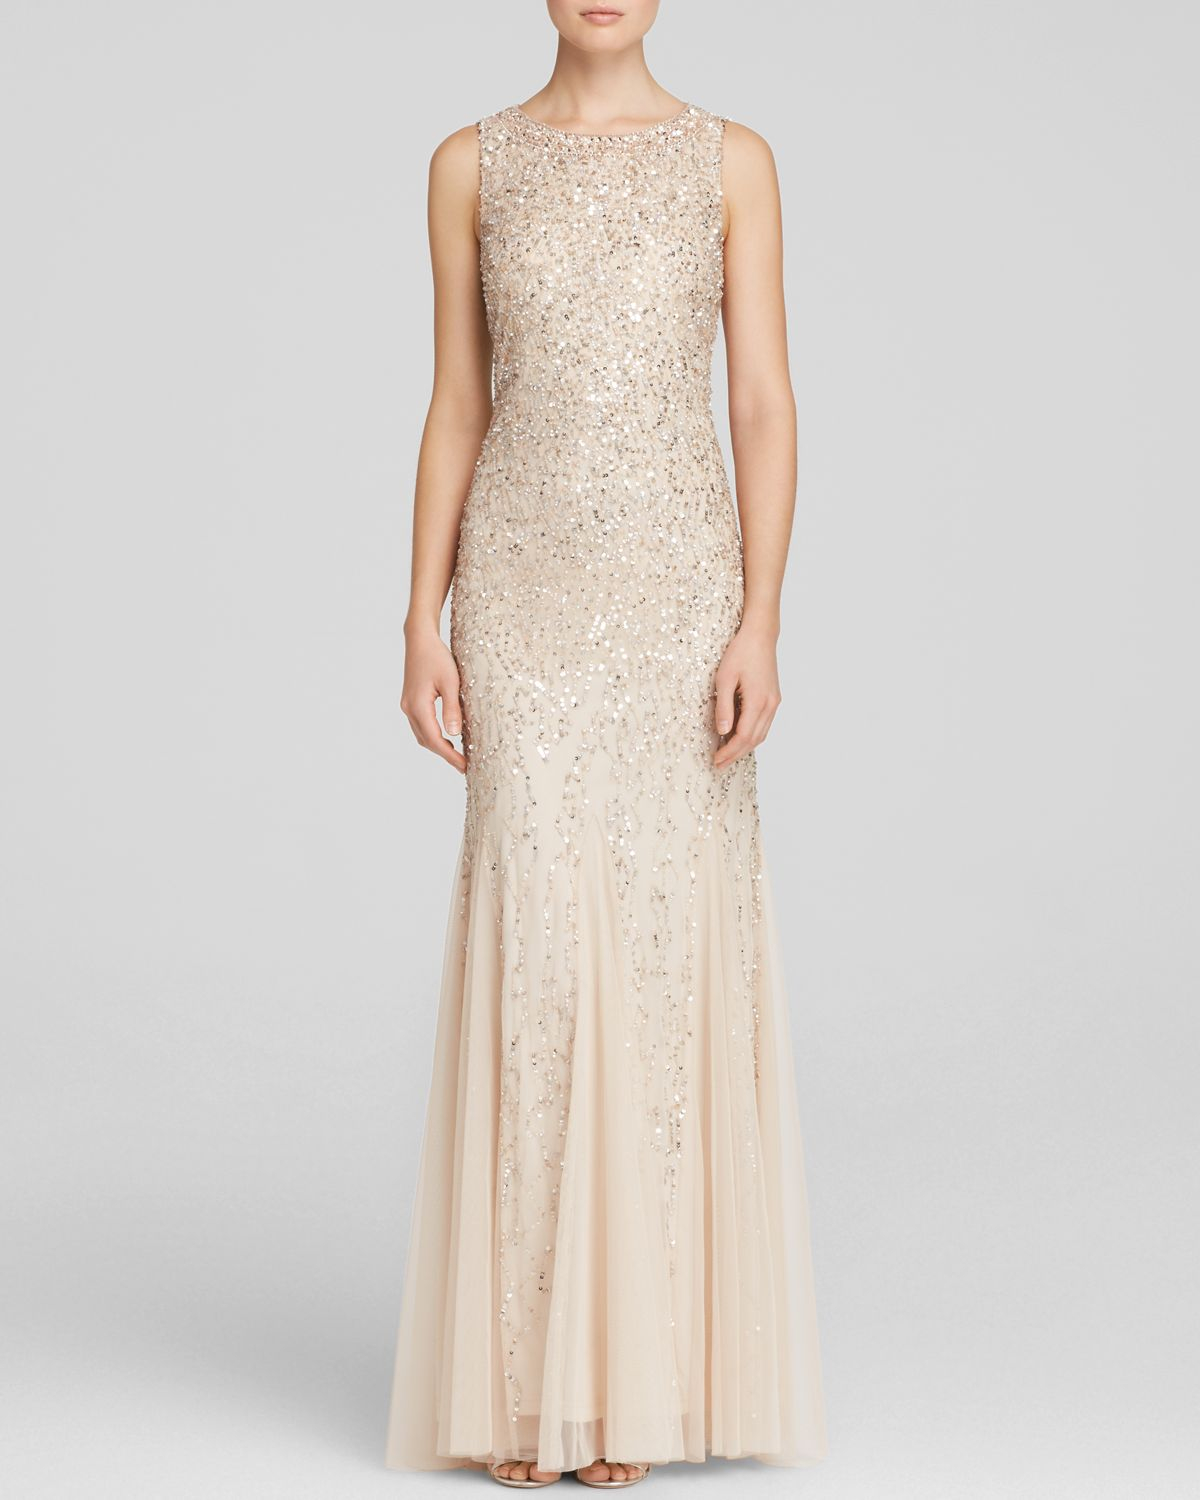 Aidan mattox Gown - Sleeveless Beaded Godet in Metallic | Lyst